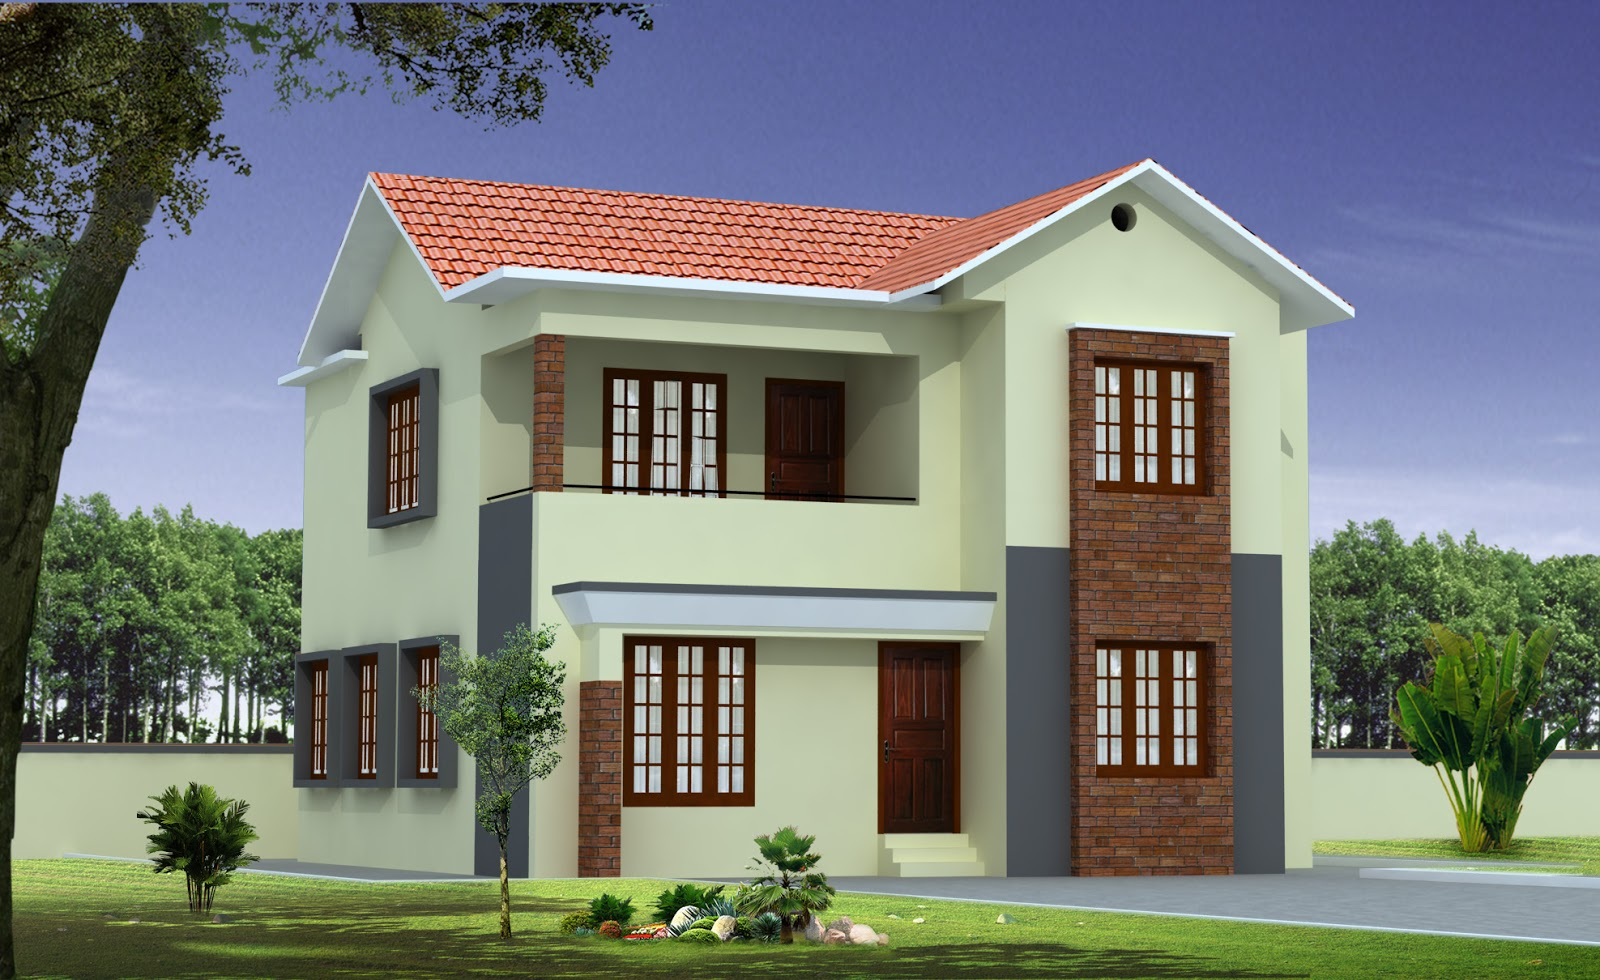 build a building latest home designs modern commercial building designs and plaza front elevation